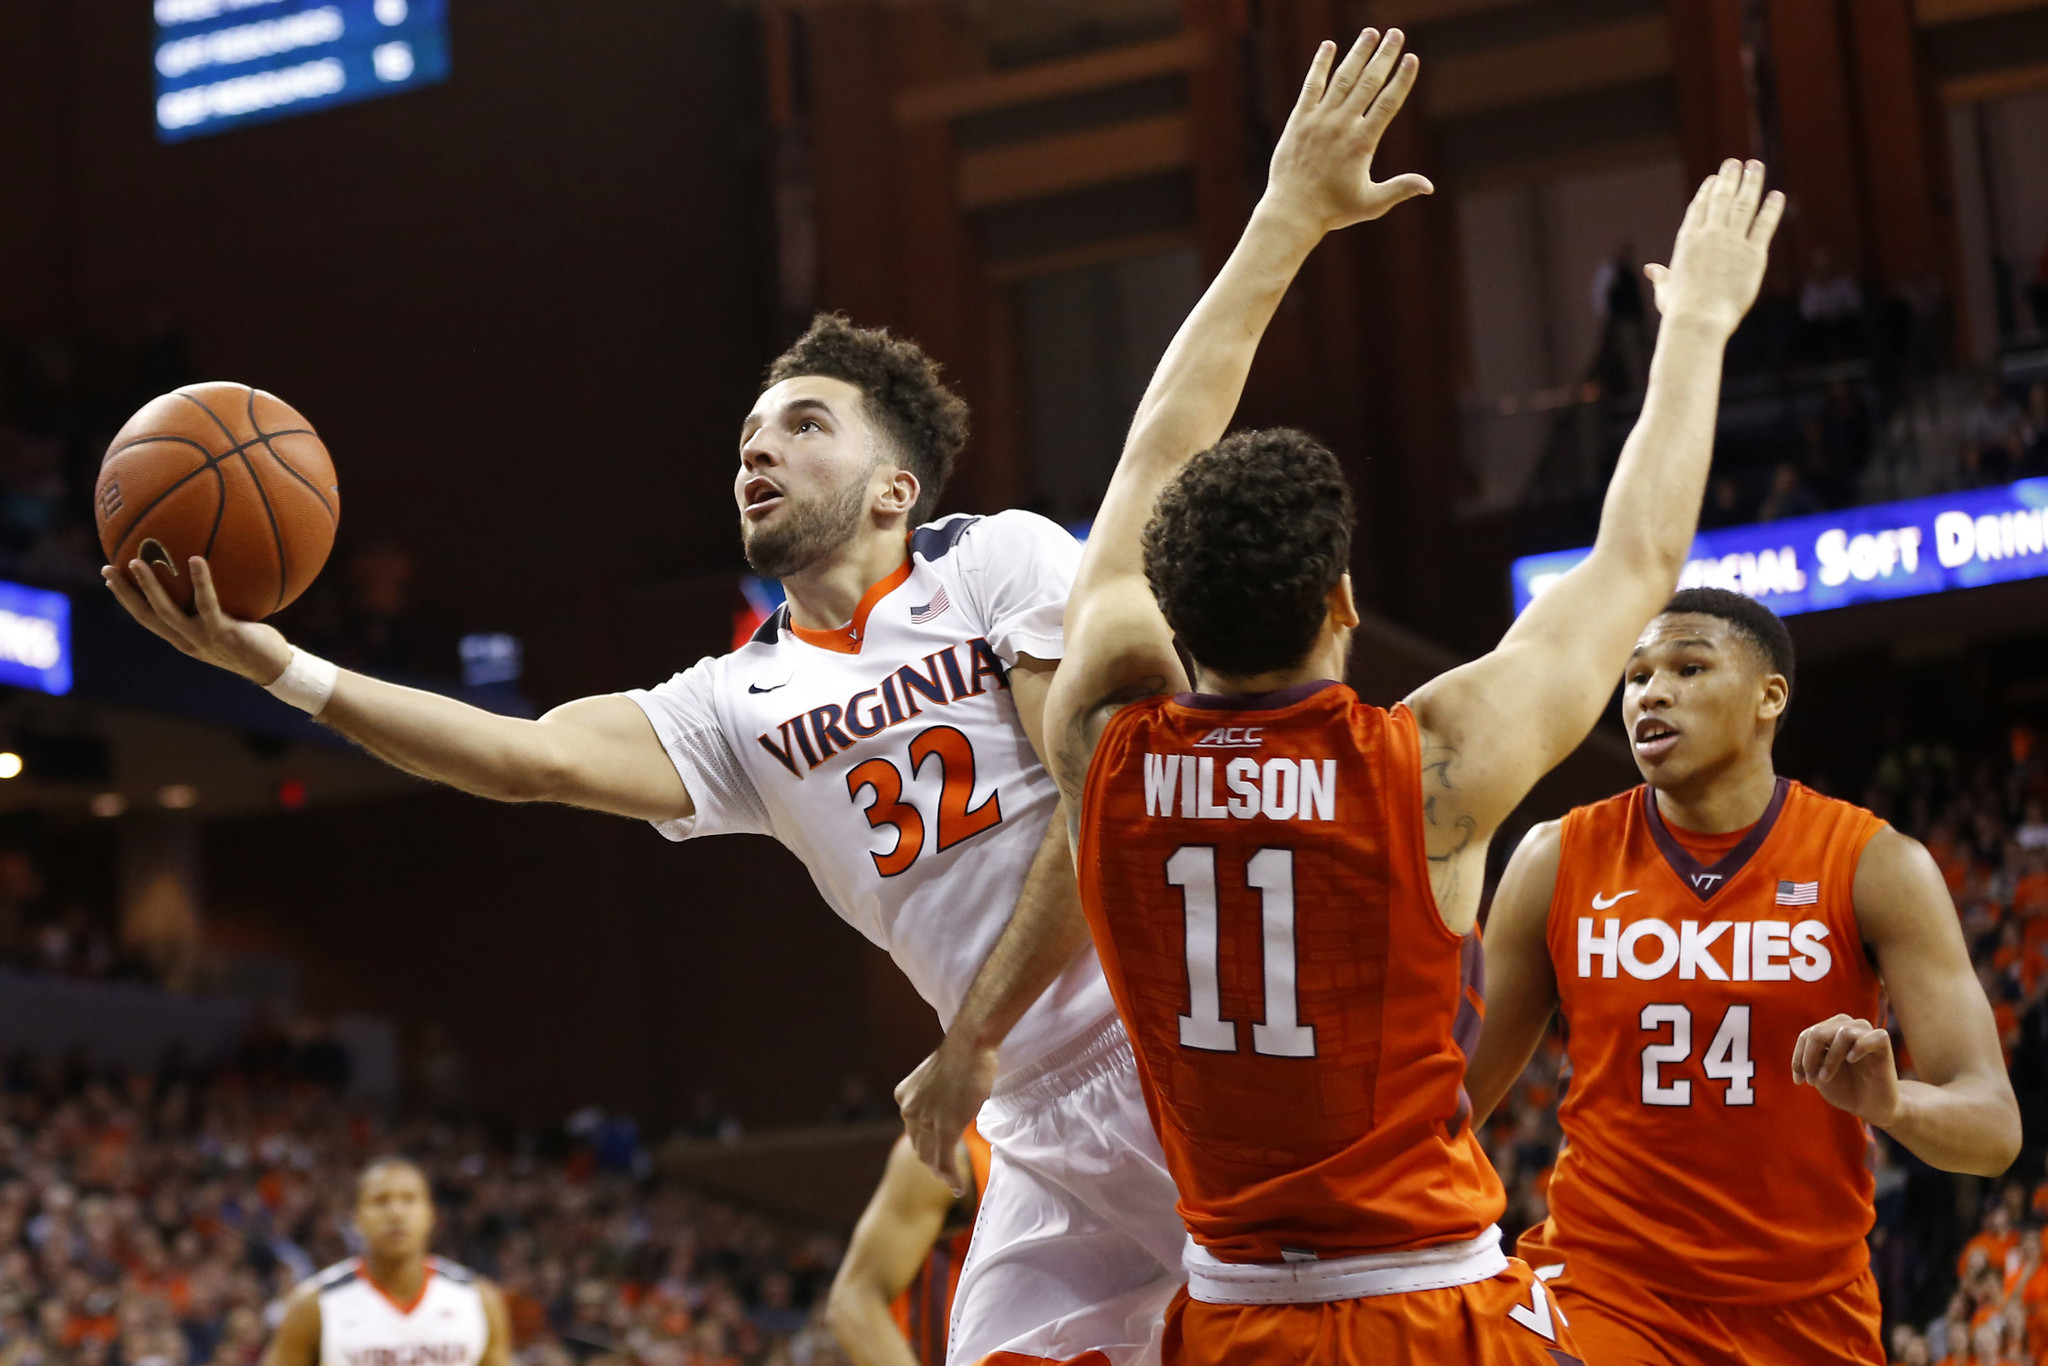 virginia and virginia tech basketball schedules for 2016-17 - daily